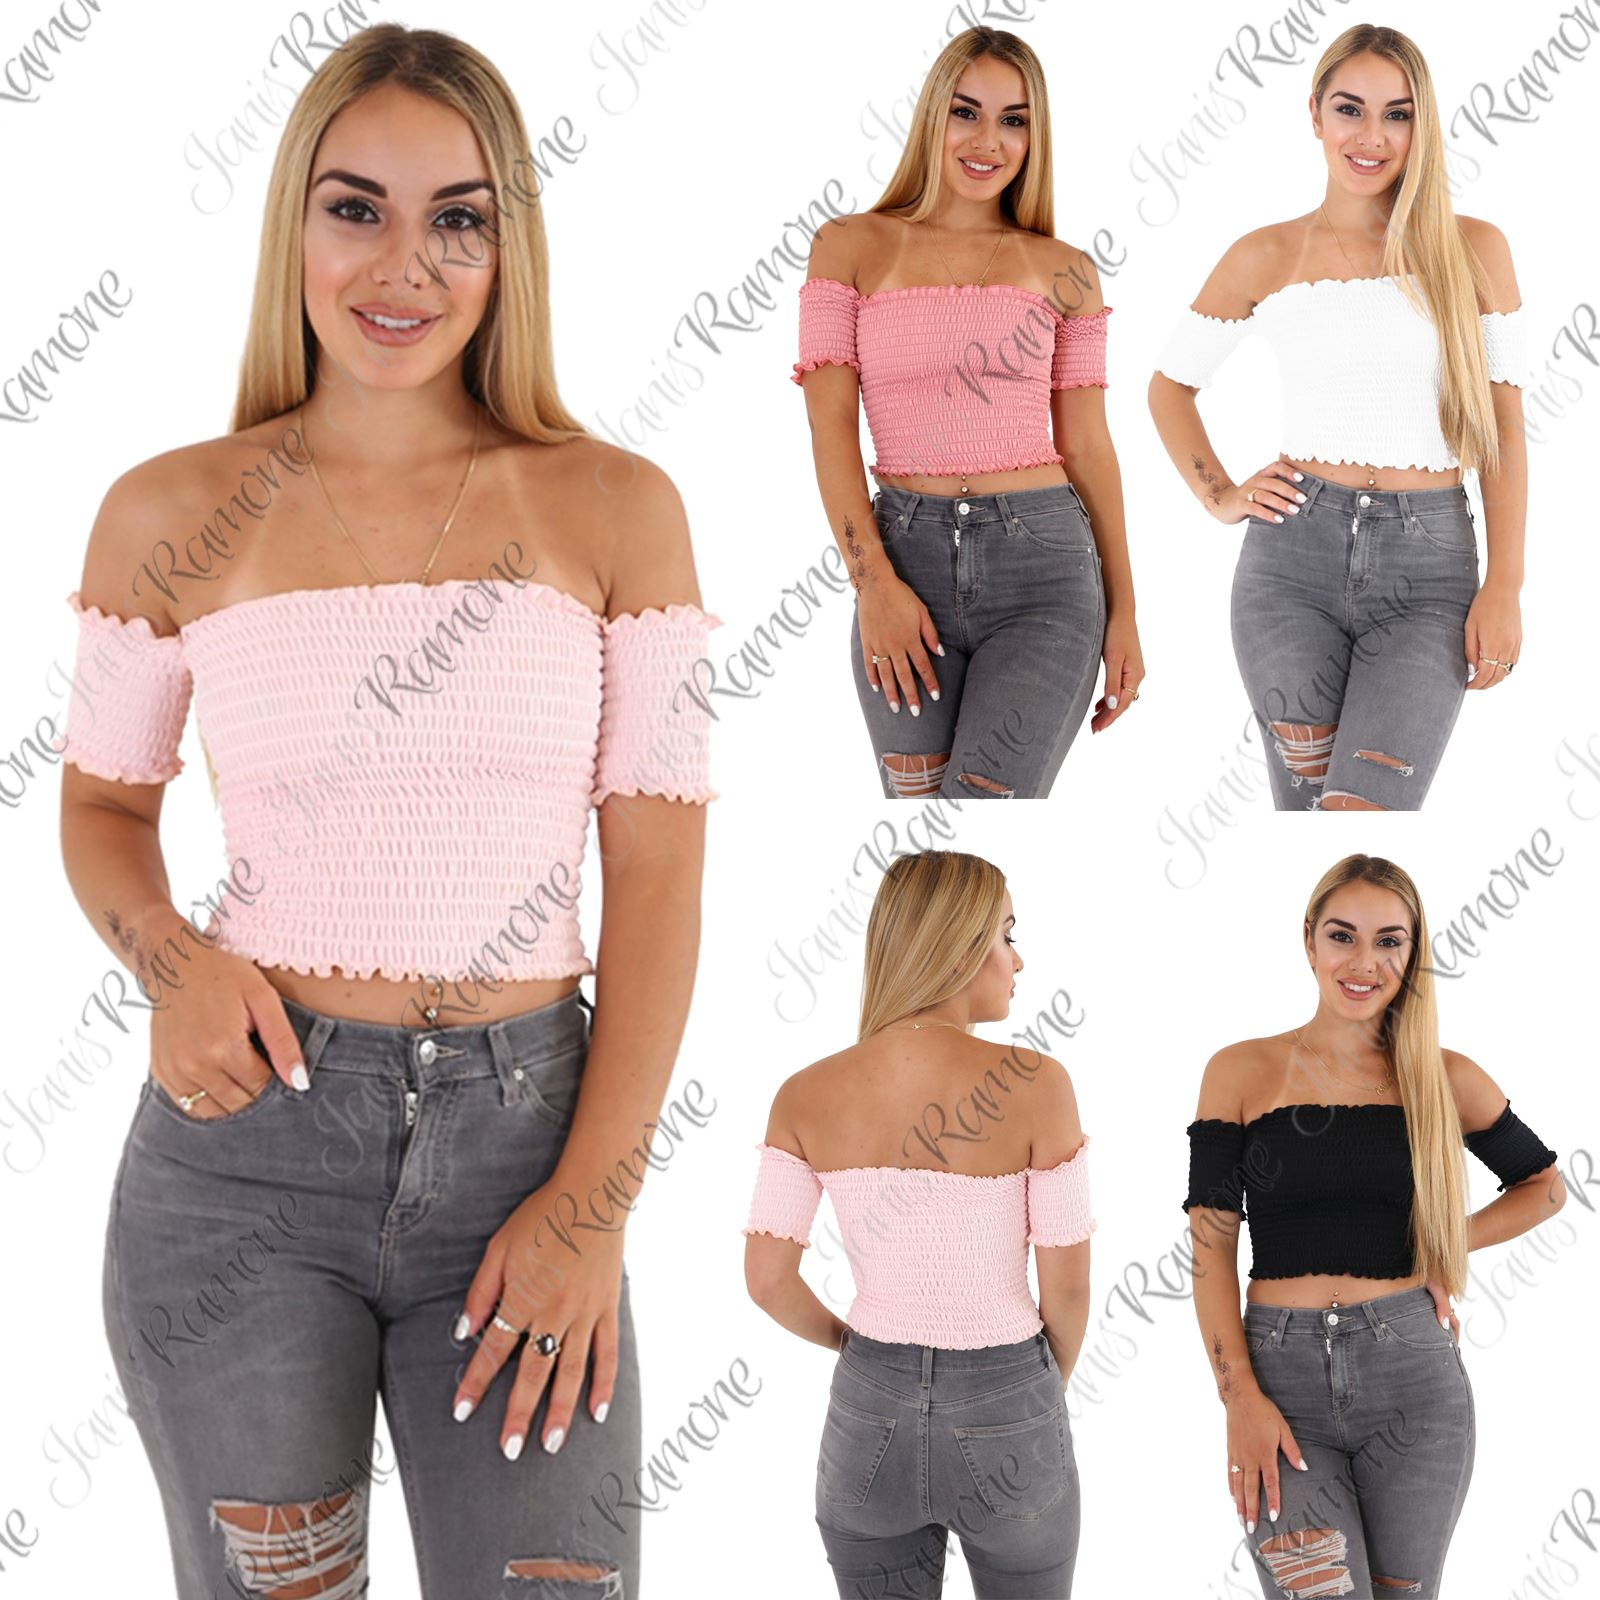 a08ccc988ca325 Details about New Womens Plain Sheer Ruched Stretch Bandeau Off Shoulder  Short Sleeve Crop Top